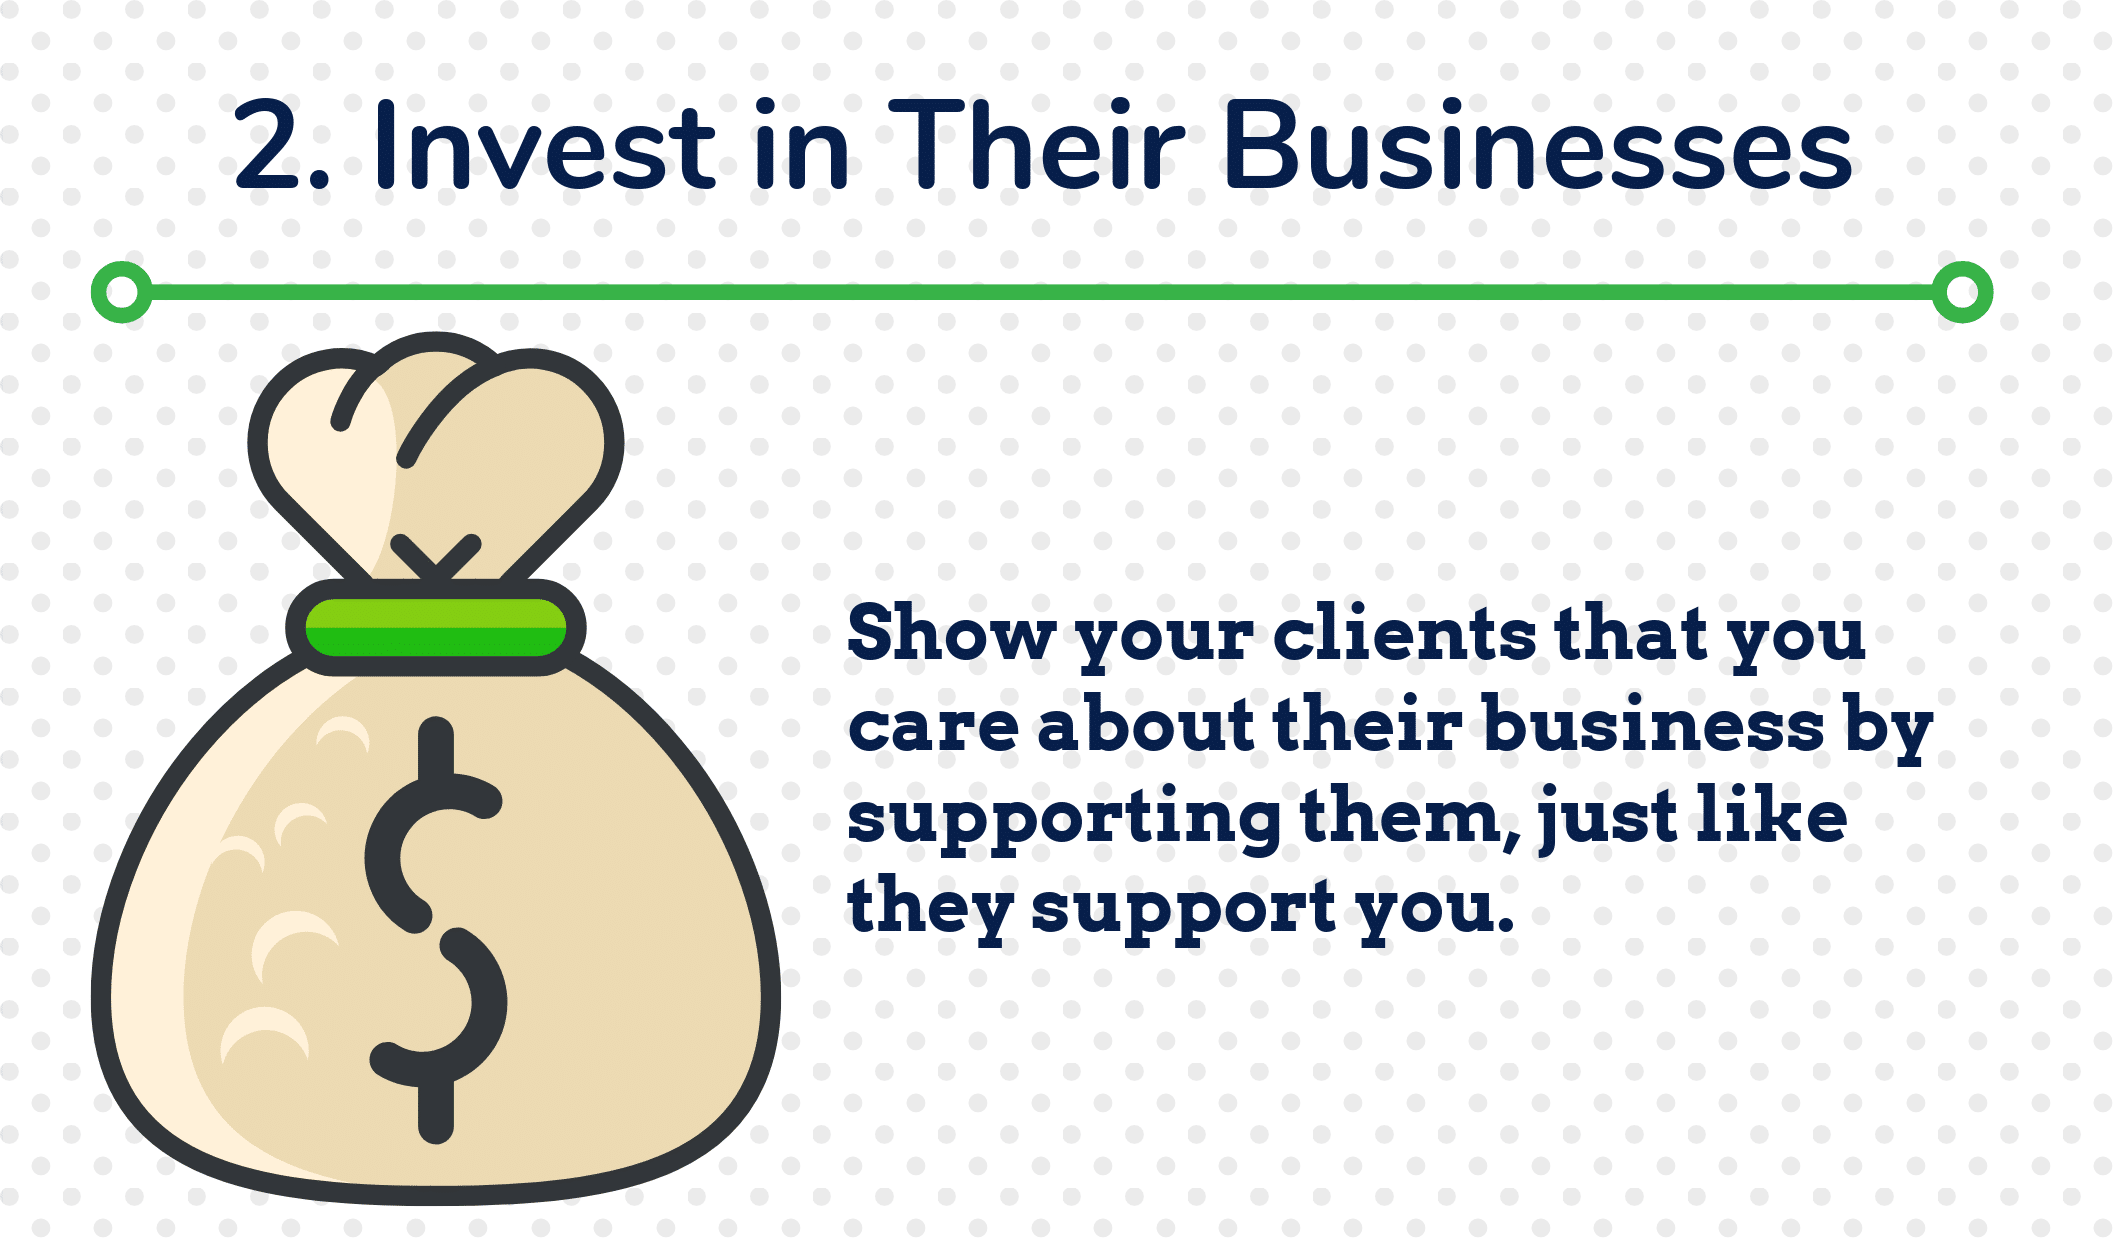 2. Invest in Their Businesses